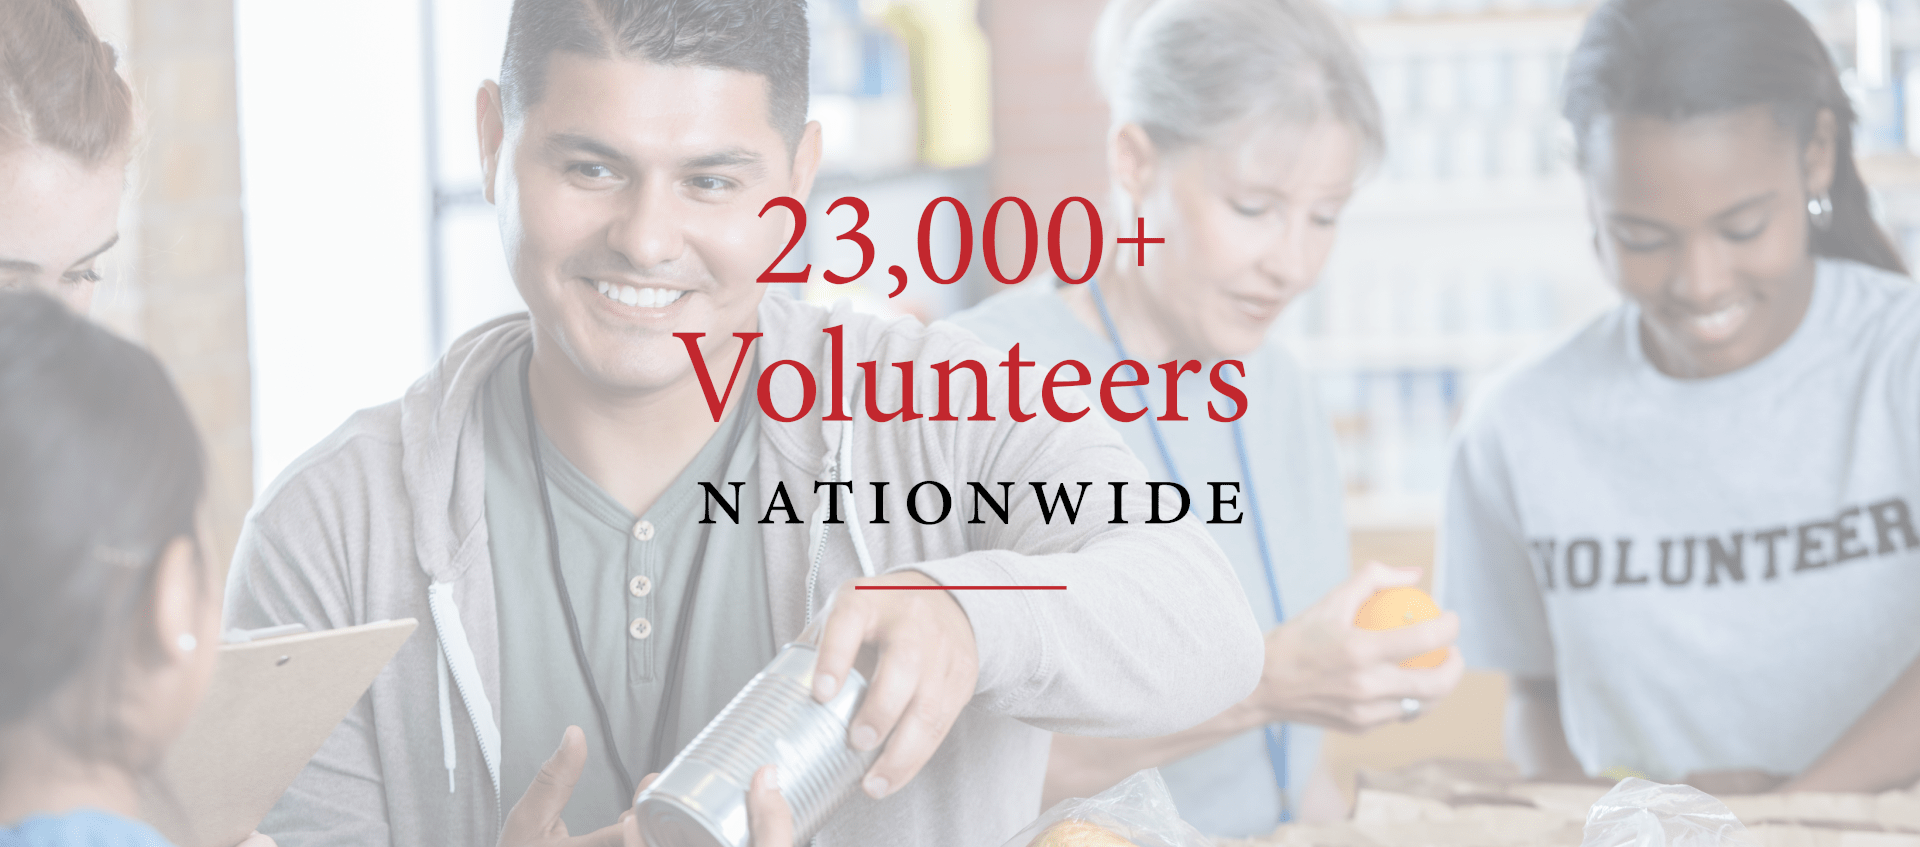 23,000+ Volunteers Nationwide